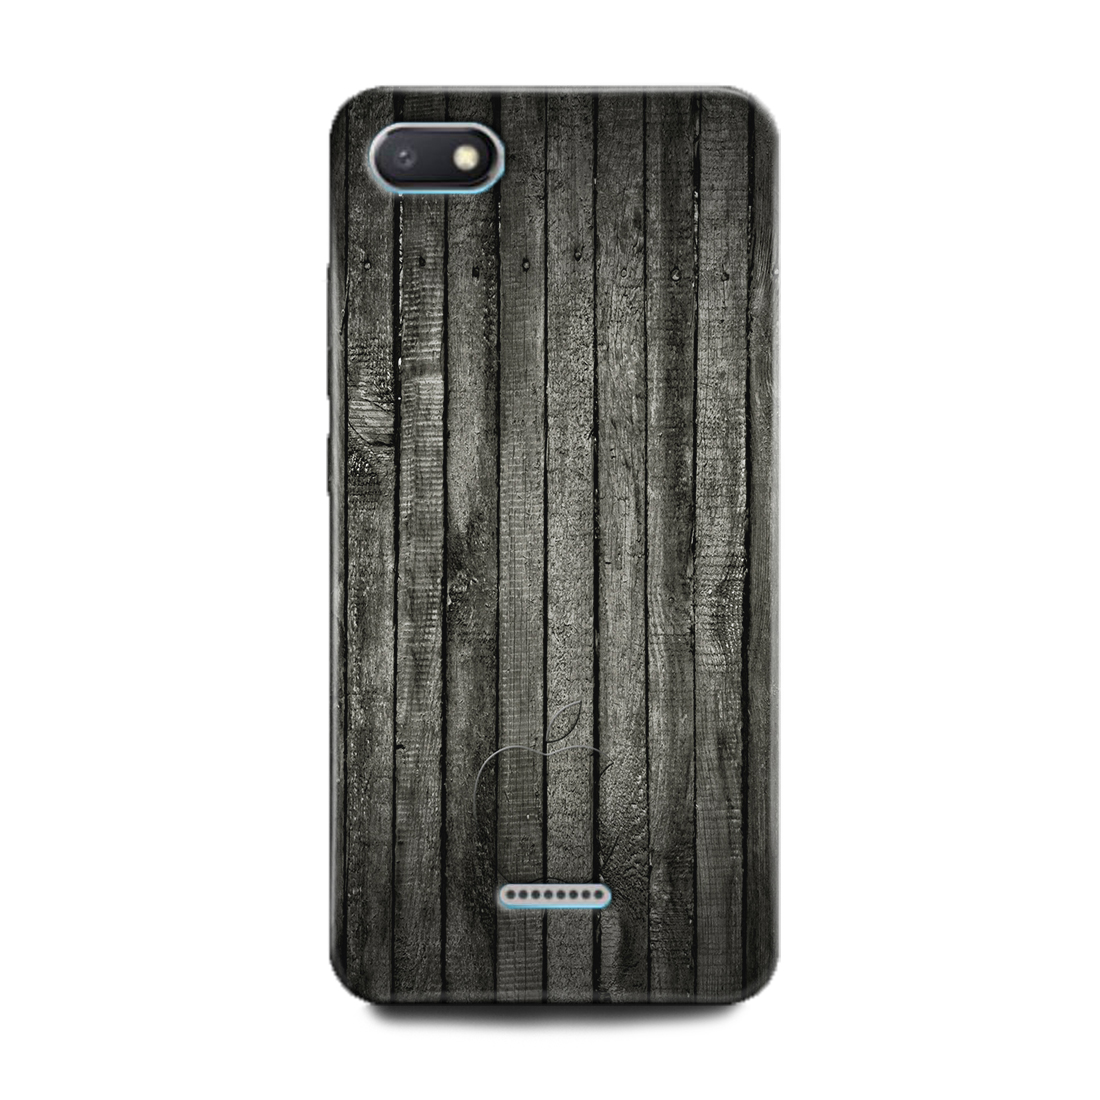 INDICRAFT Mobile Back Cover For Mi Redmi 6A(Wood, Broune Wooden, Texture, Pattern, Black) (AB-Redmi6A-0493)